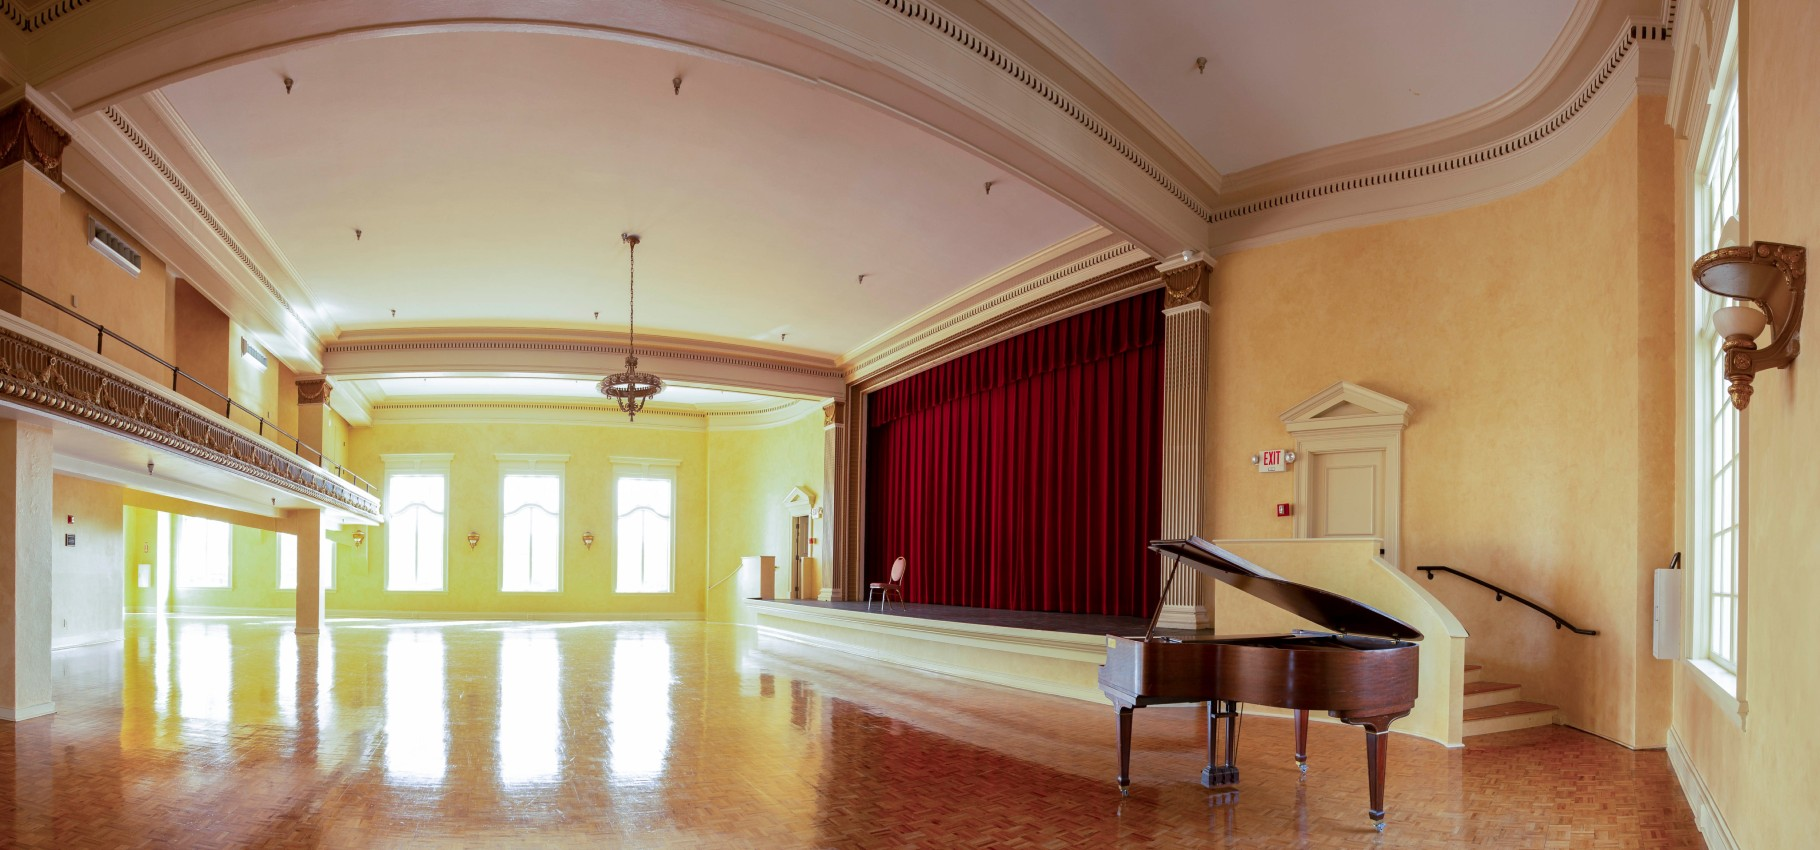 open hall with piano and stage